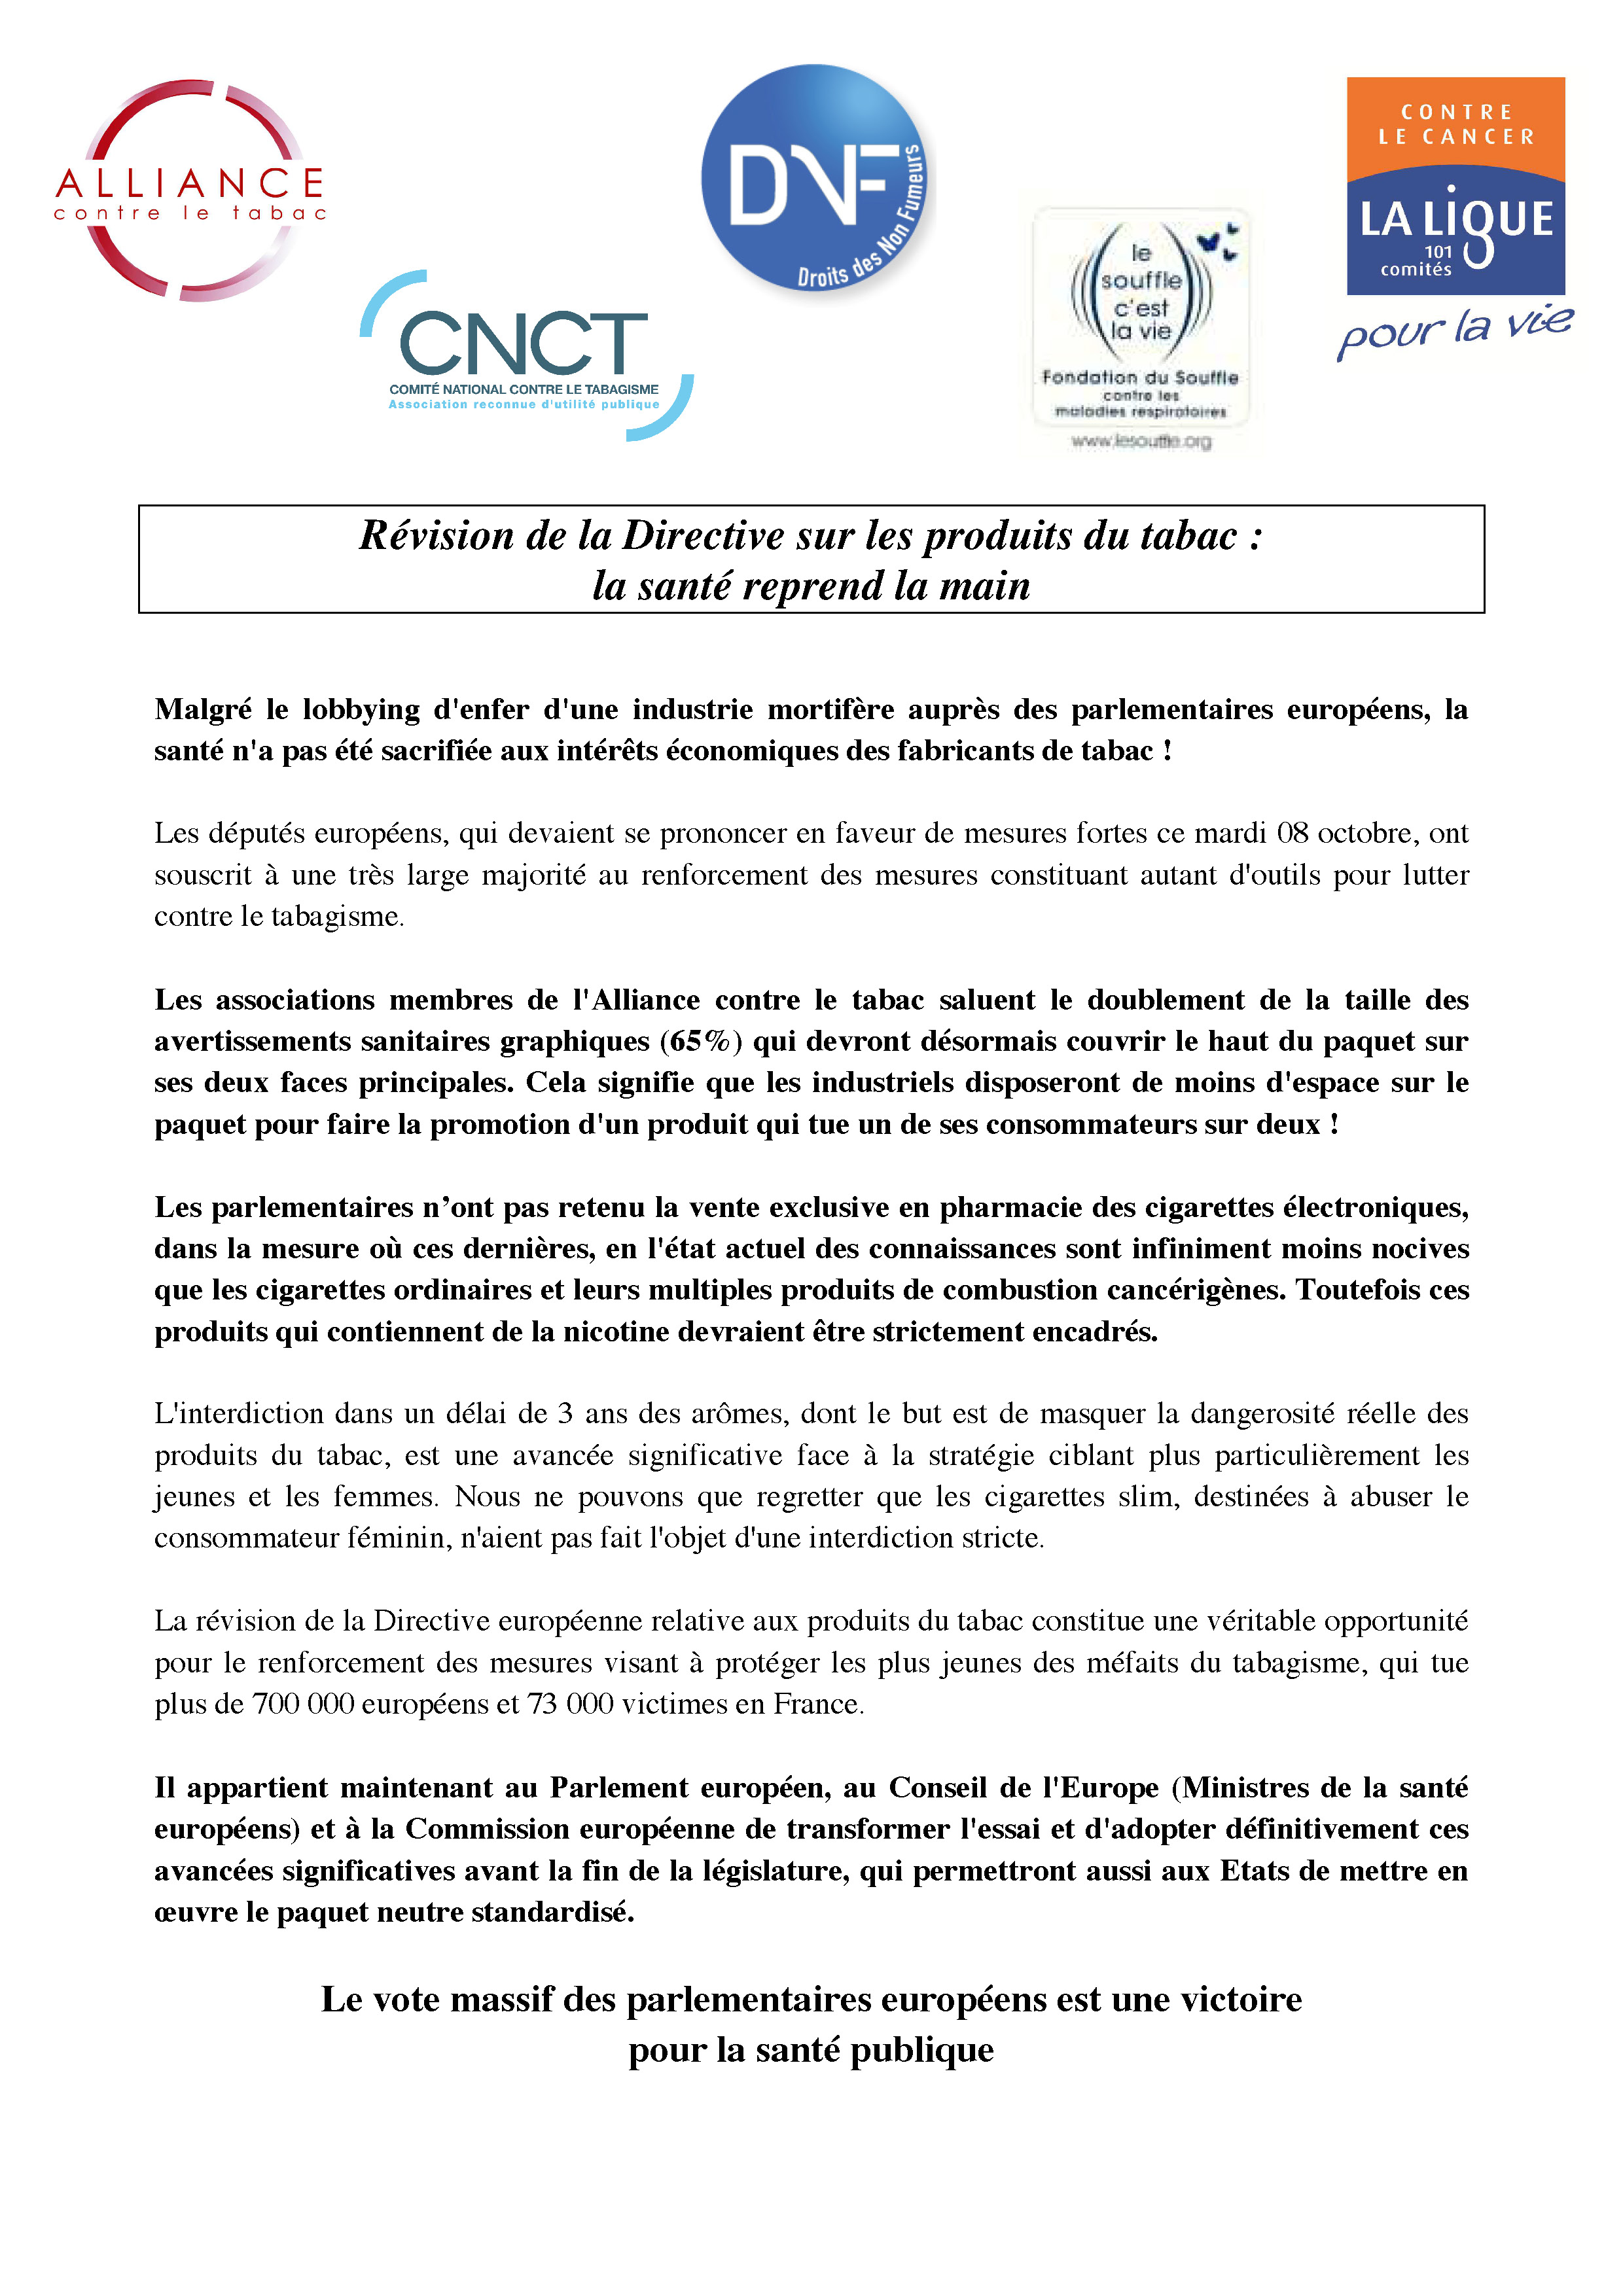 Alliance-CP_revision-de-la-directive-europeenne-tabac_08oct2013_Page_1.jpg